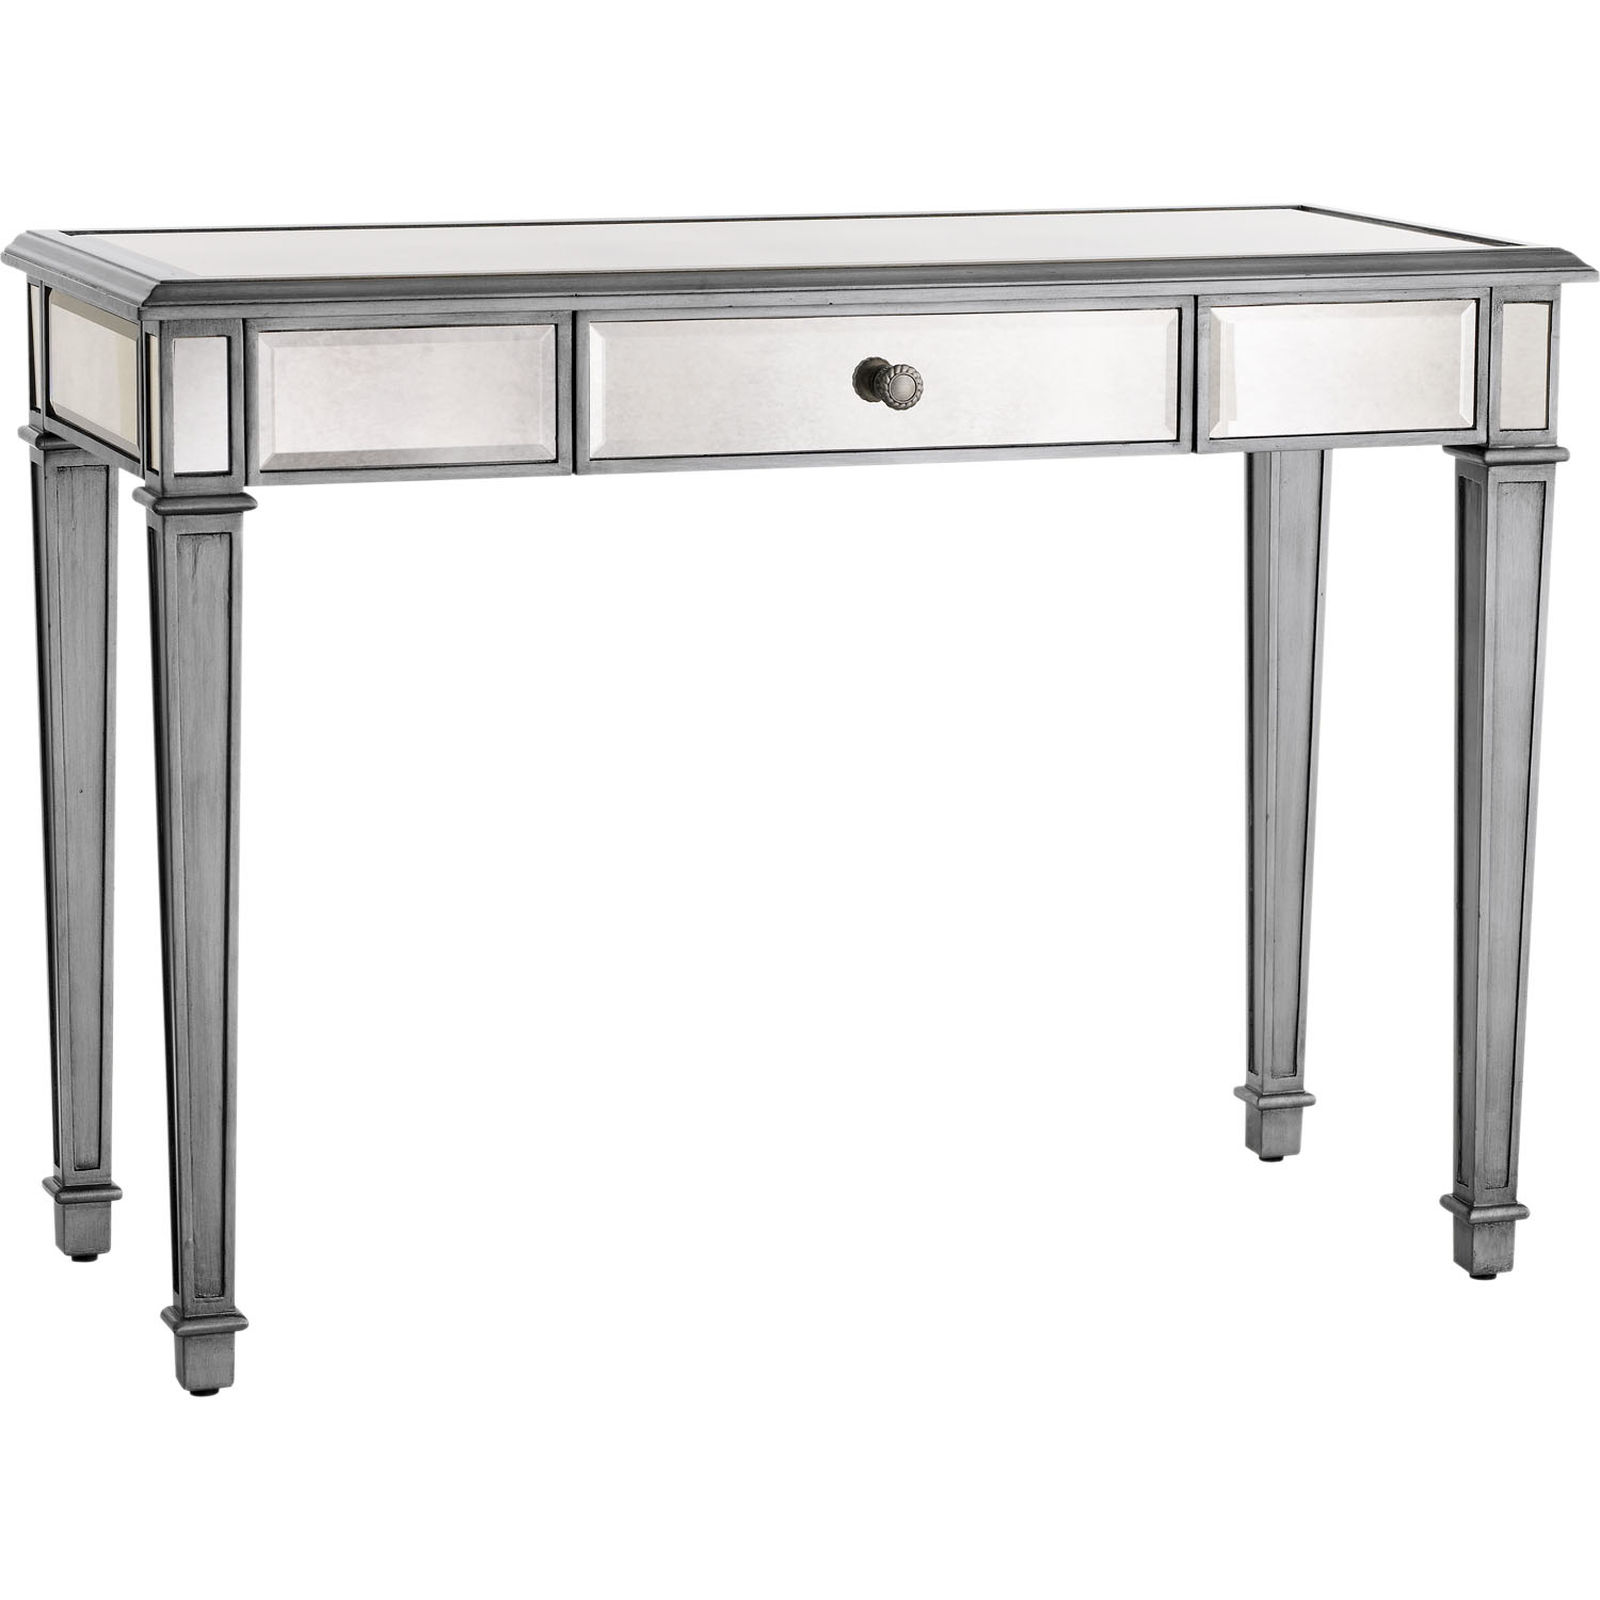 Breathtaking hayworth vanity mirrored vanity and ikea vanity also ikea rug hayworth rug ideas